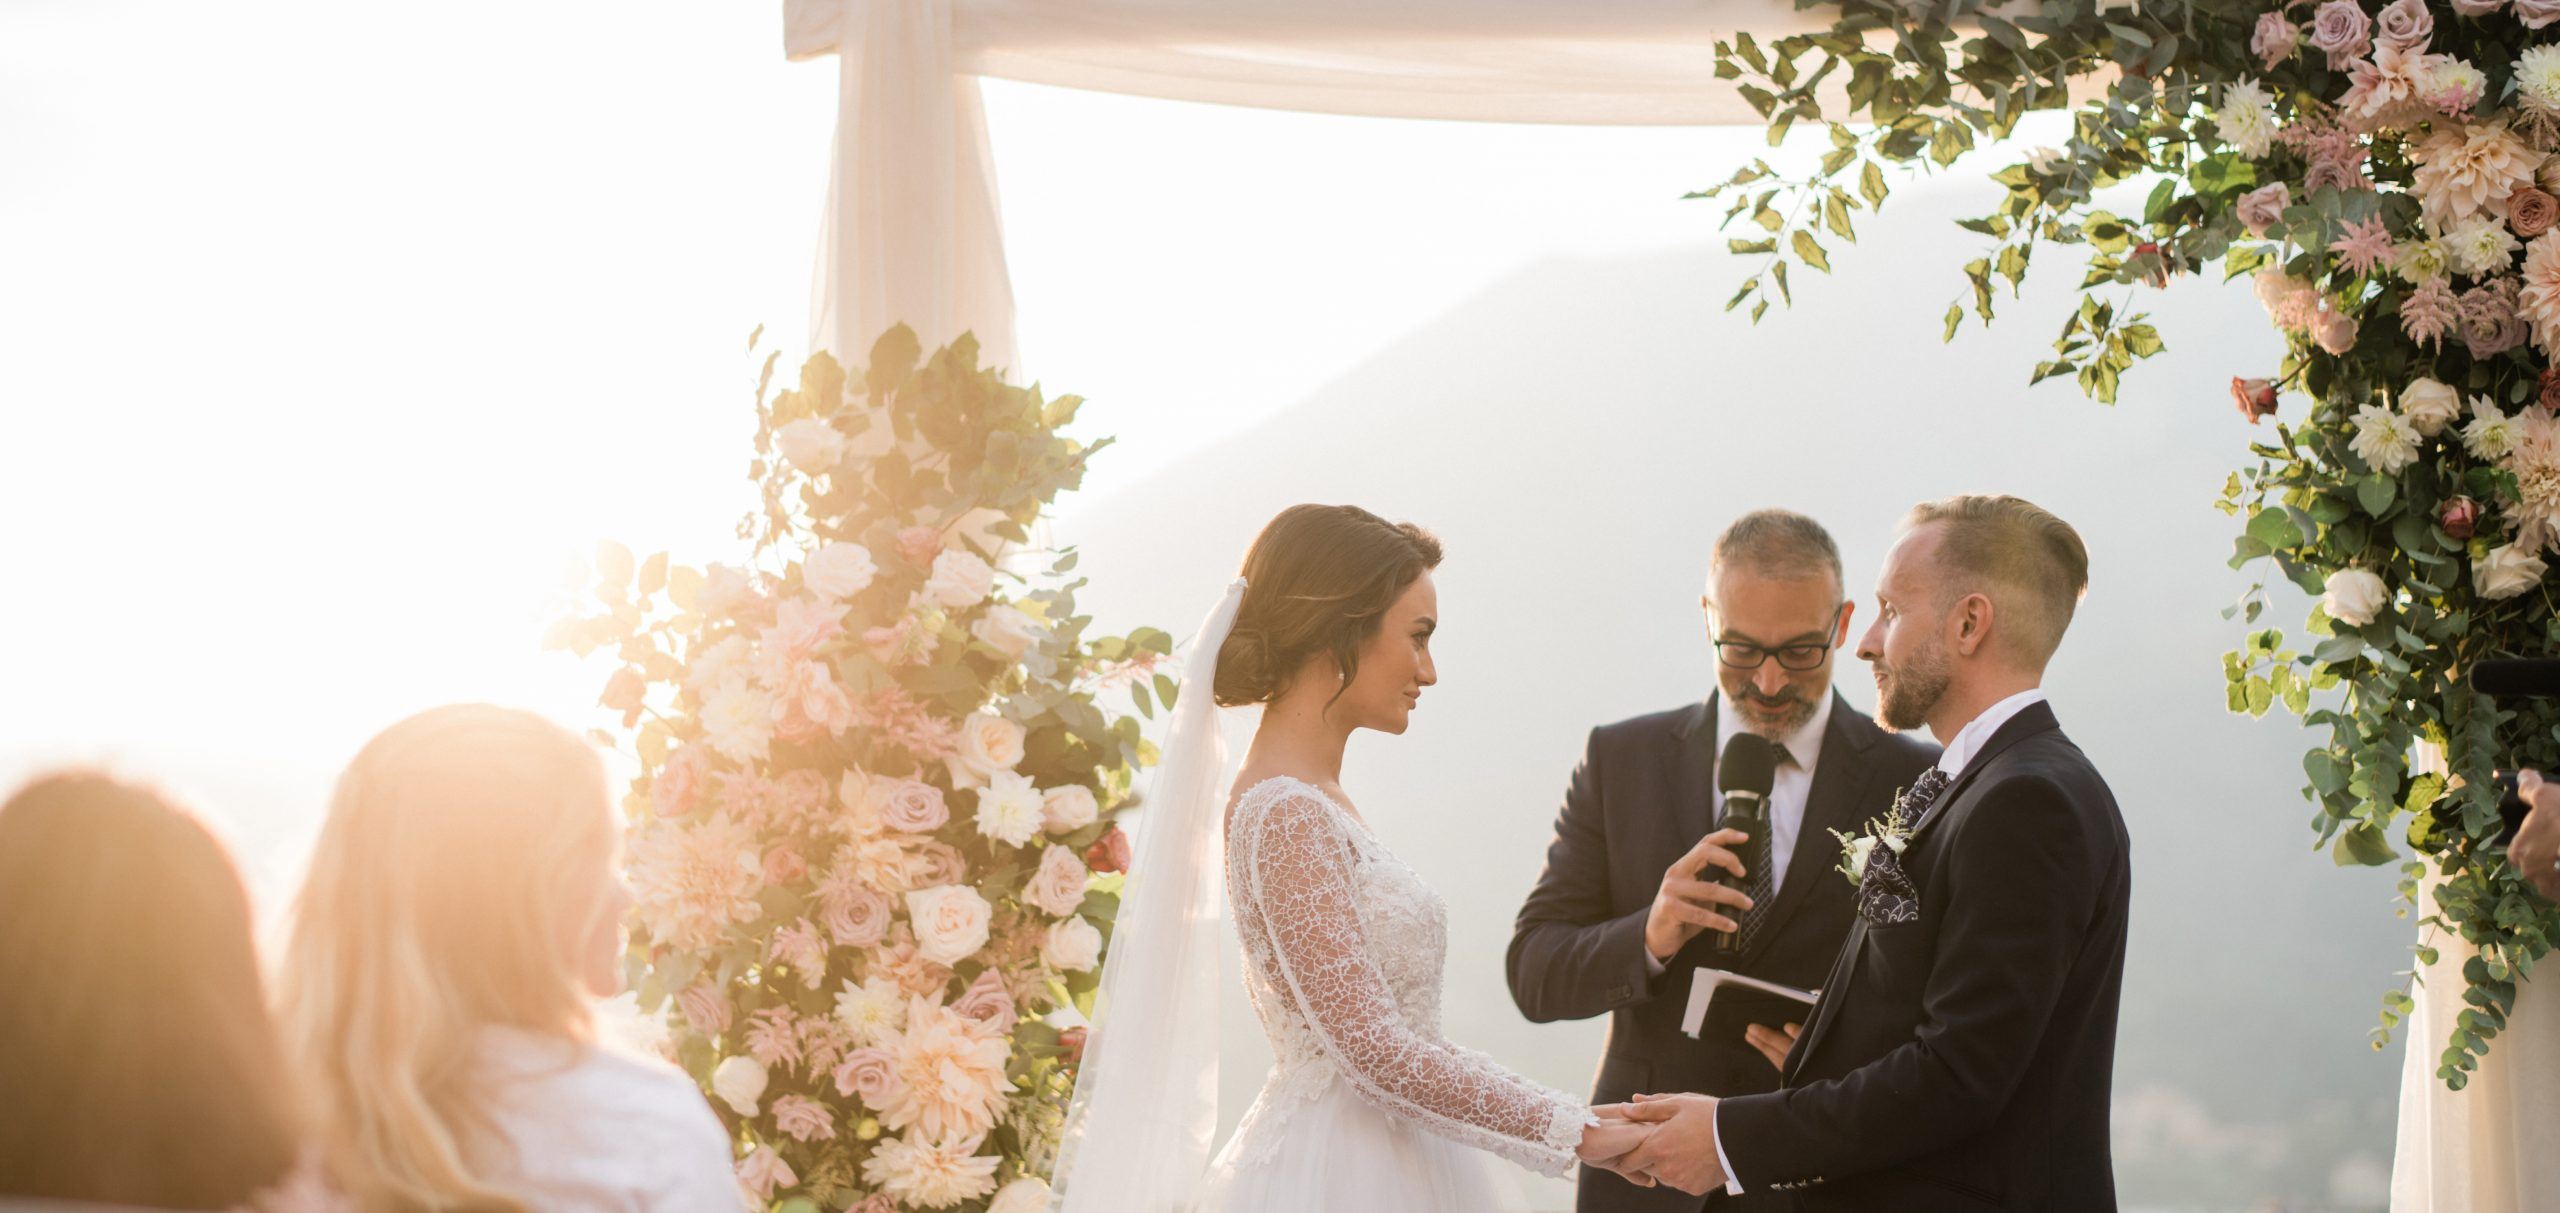 Home - Wedding Photography and Videography Italy